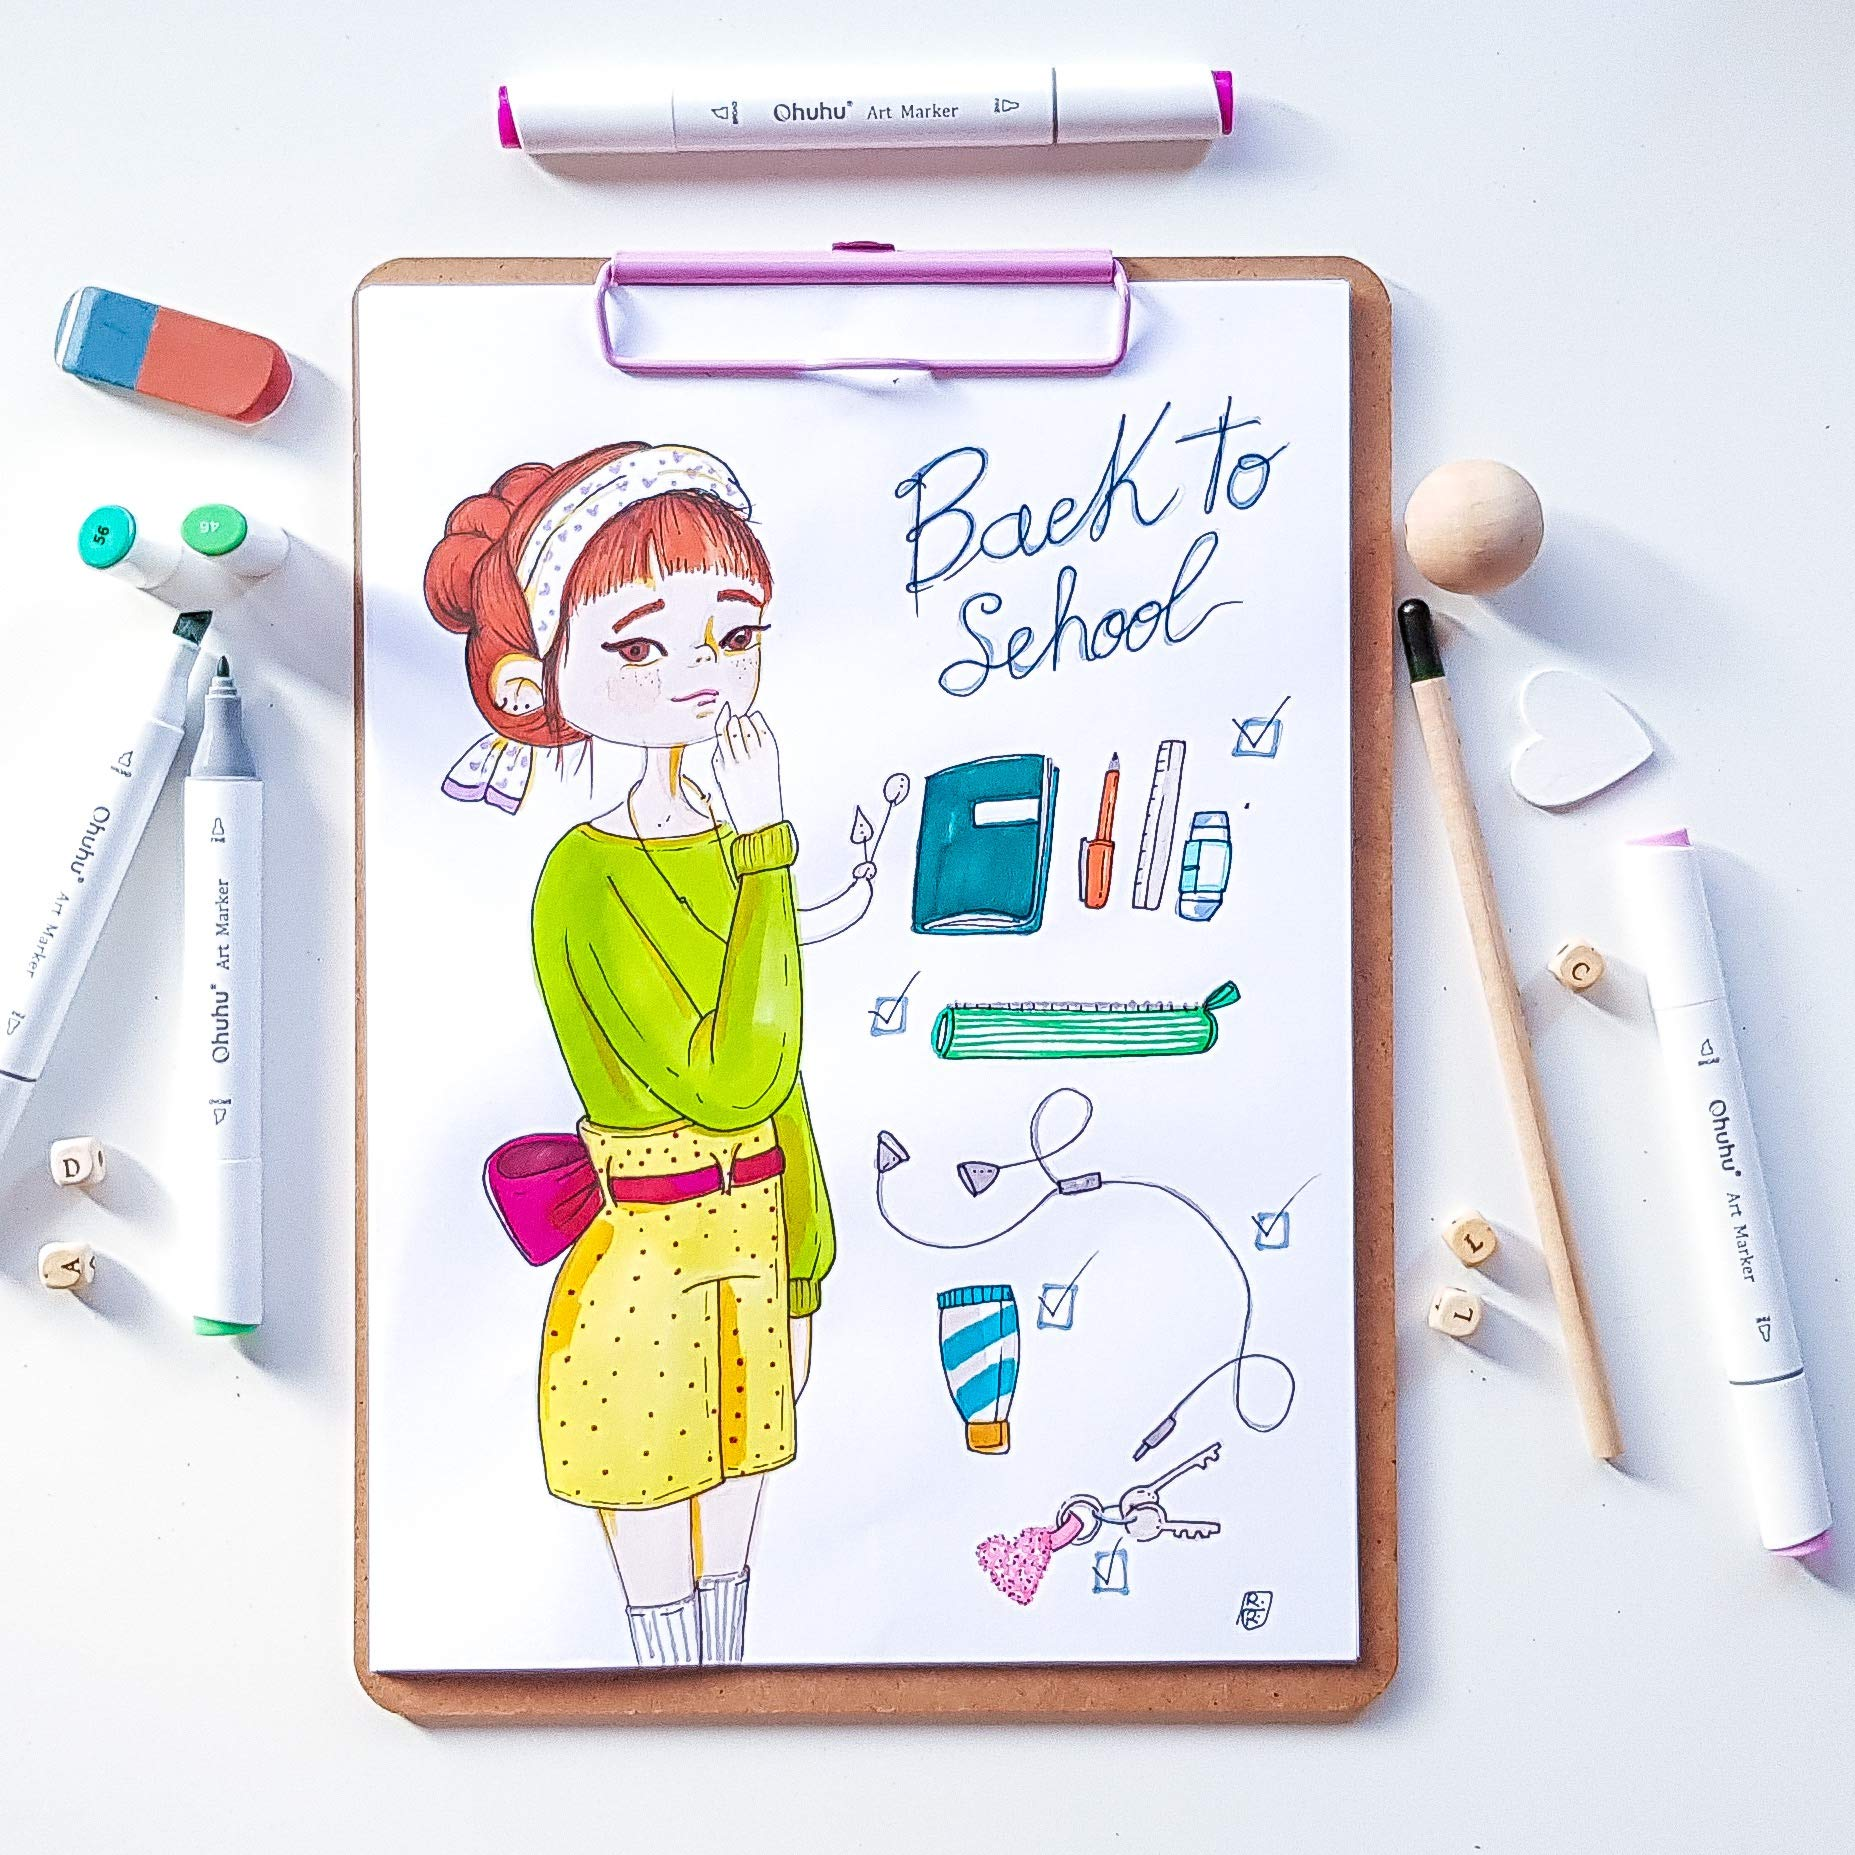 Permanent Sketch Book: Ohuhu 40-color Alcohol Marker, Dual Tips